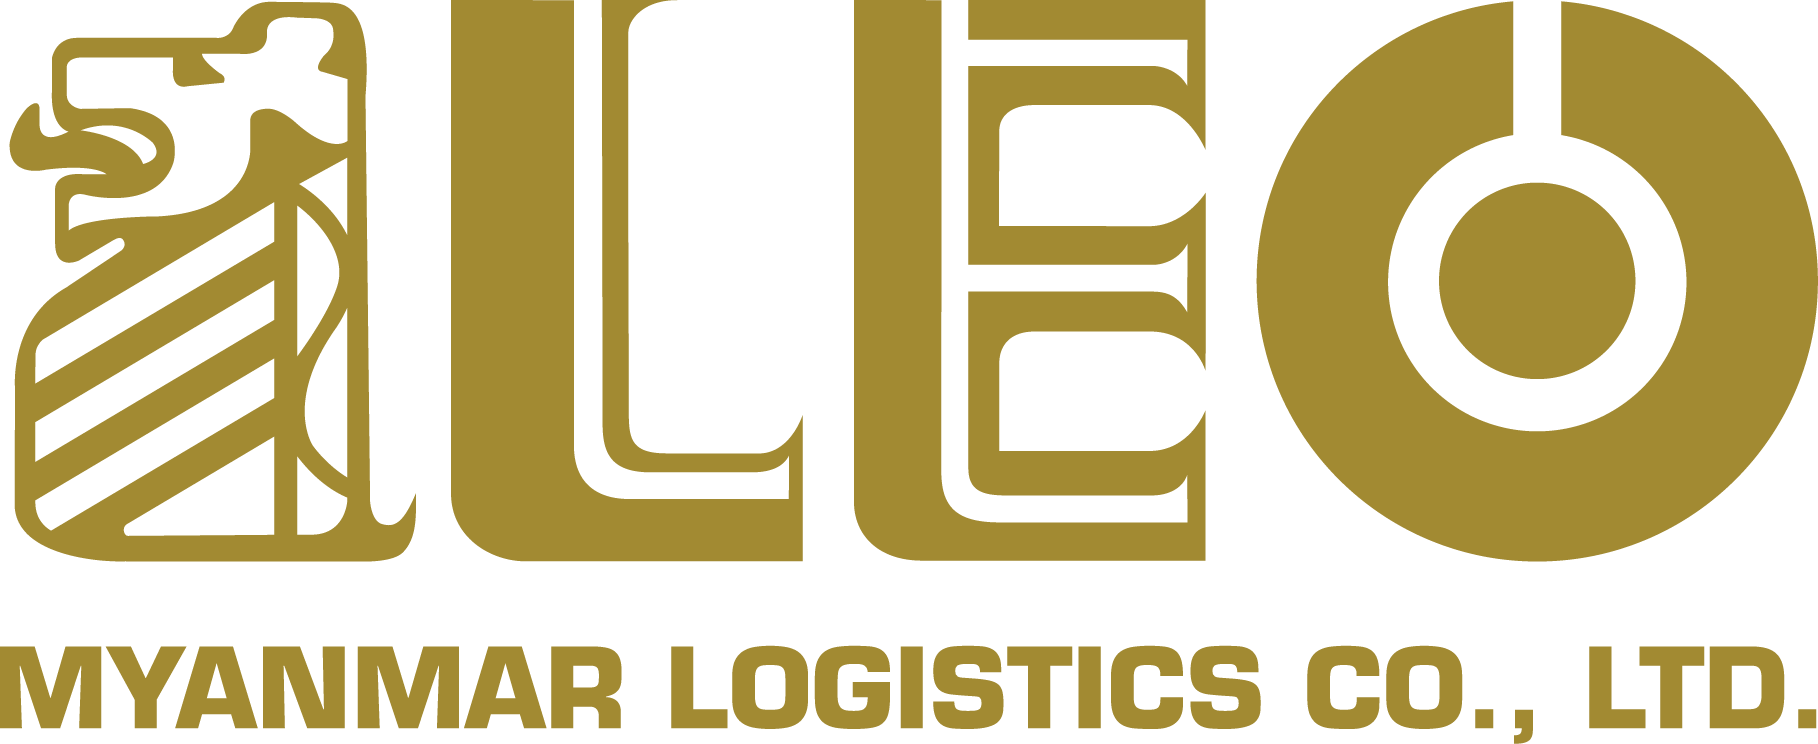 Leo Myanmar Logistics Co Ltd